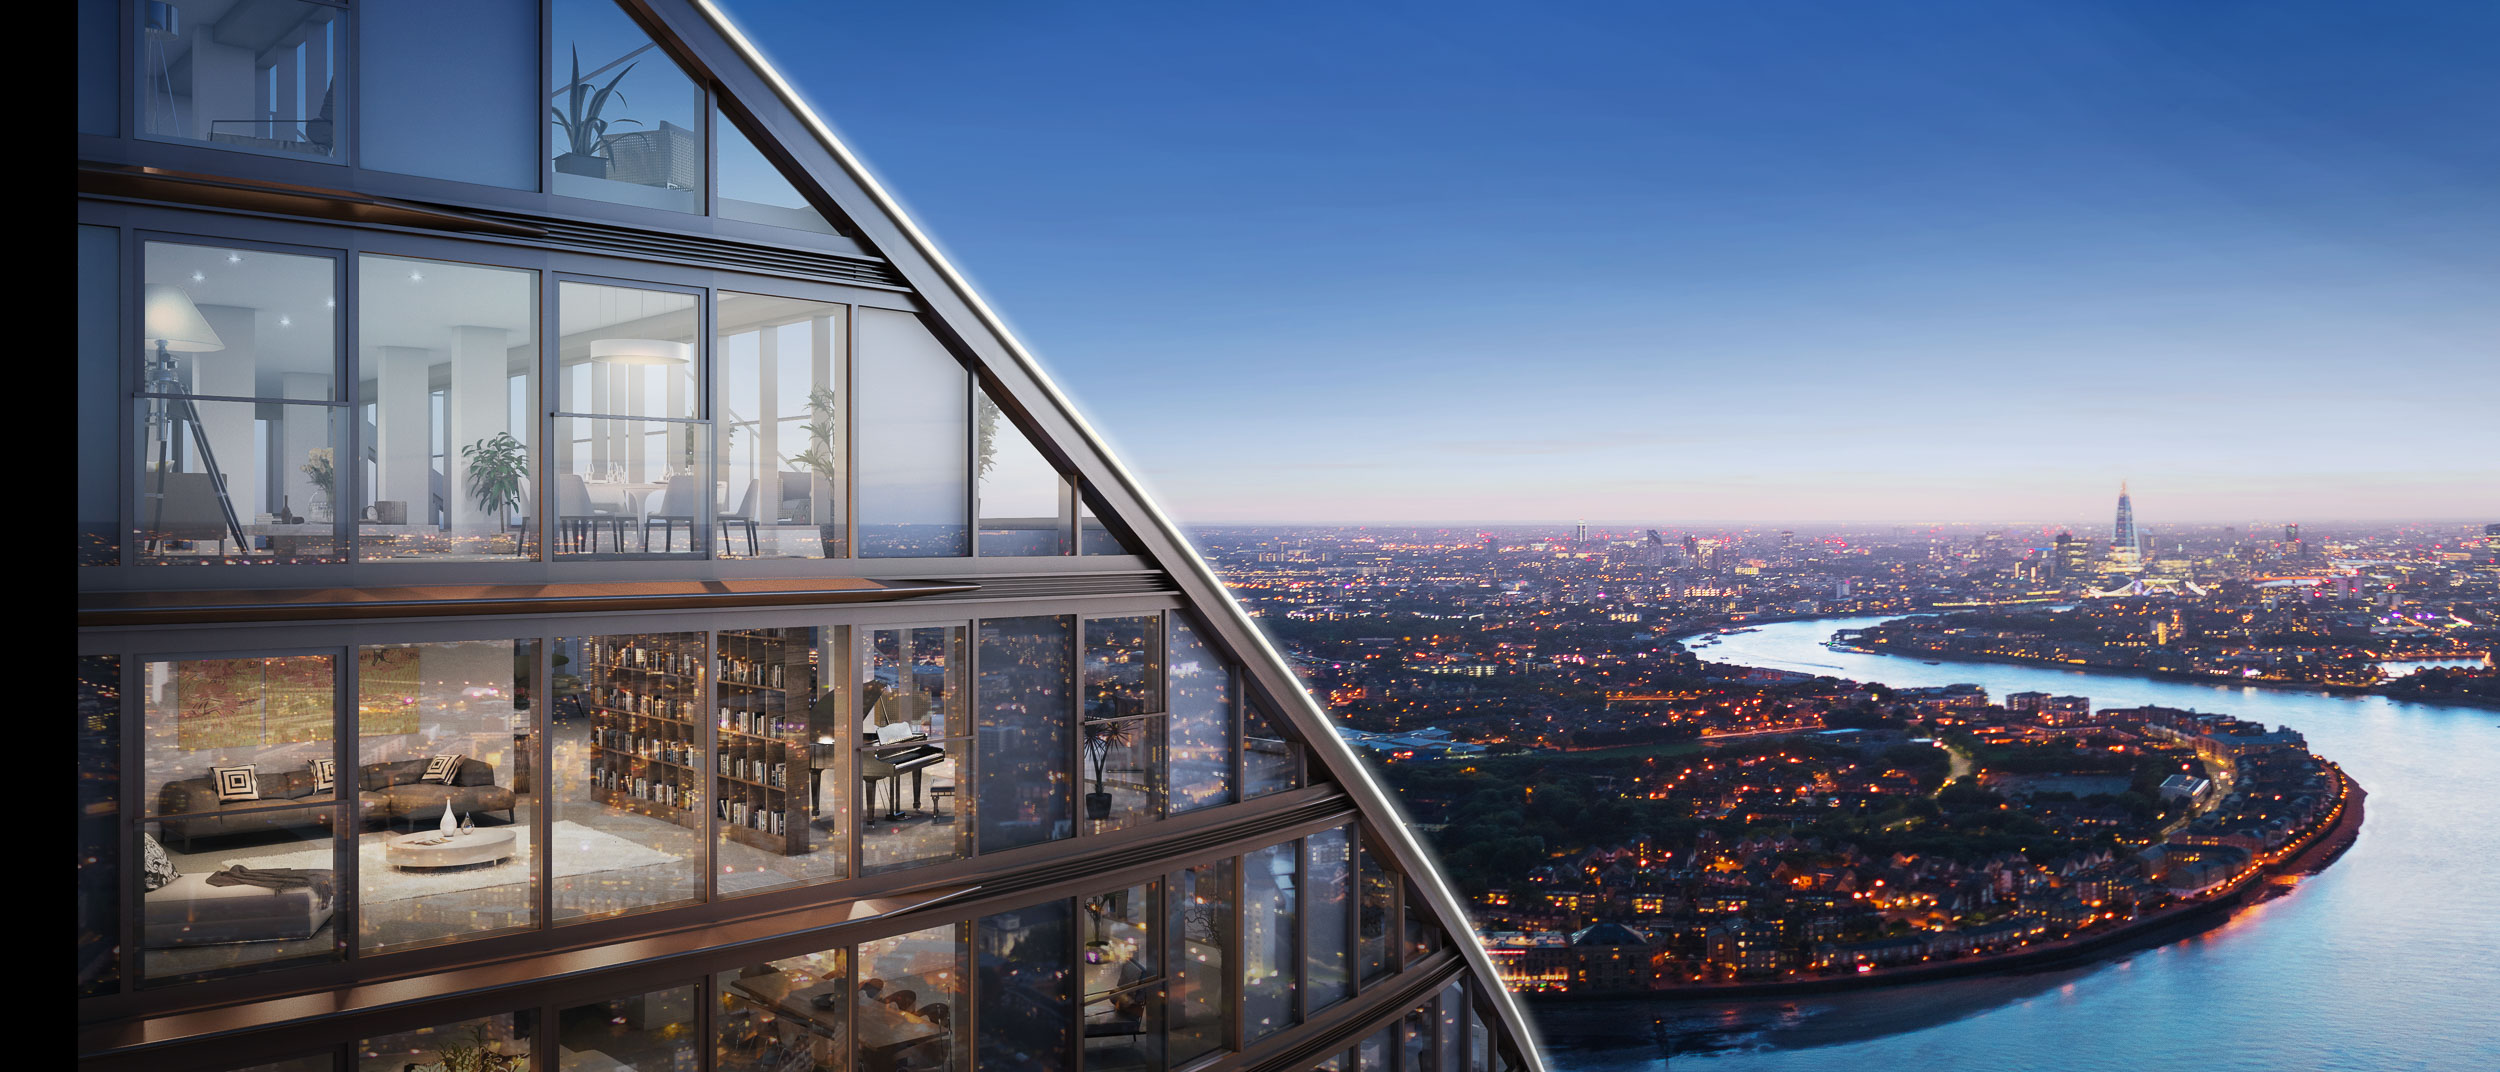 The skyscraper has incredible views of London. Penthouses line the top the building, each with private terraces facing the setting sun to the west.